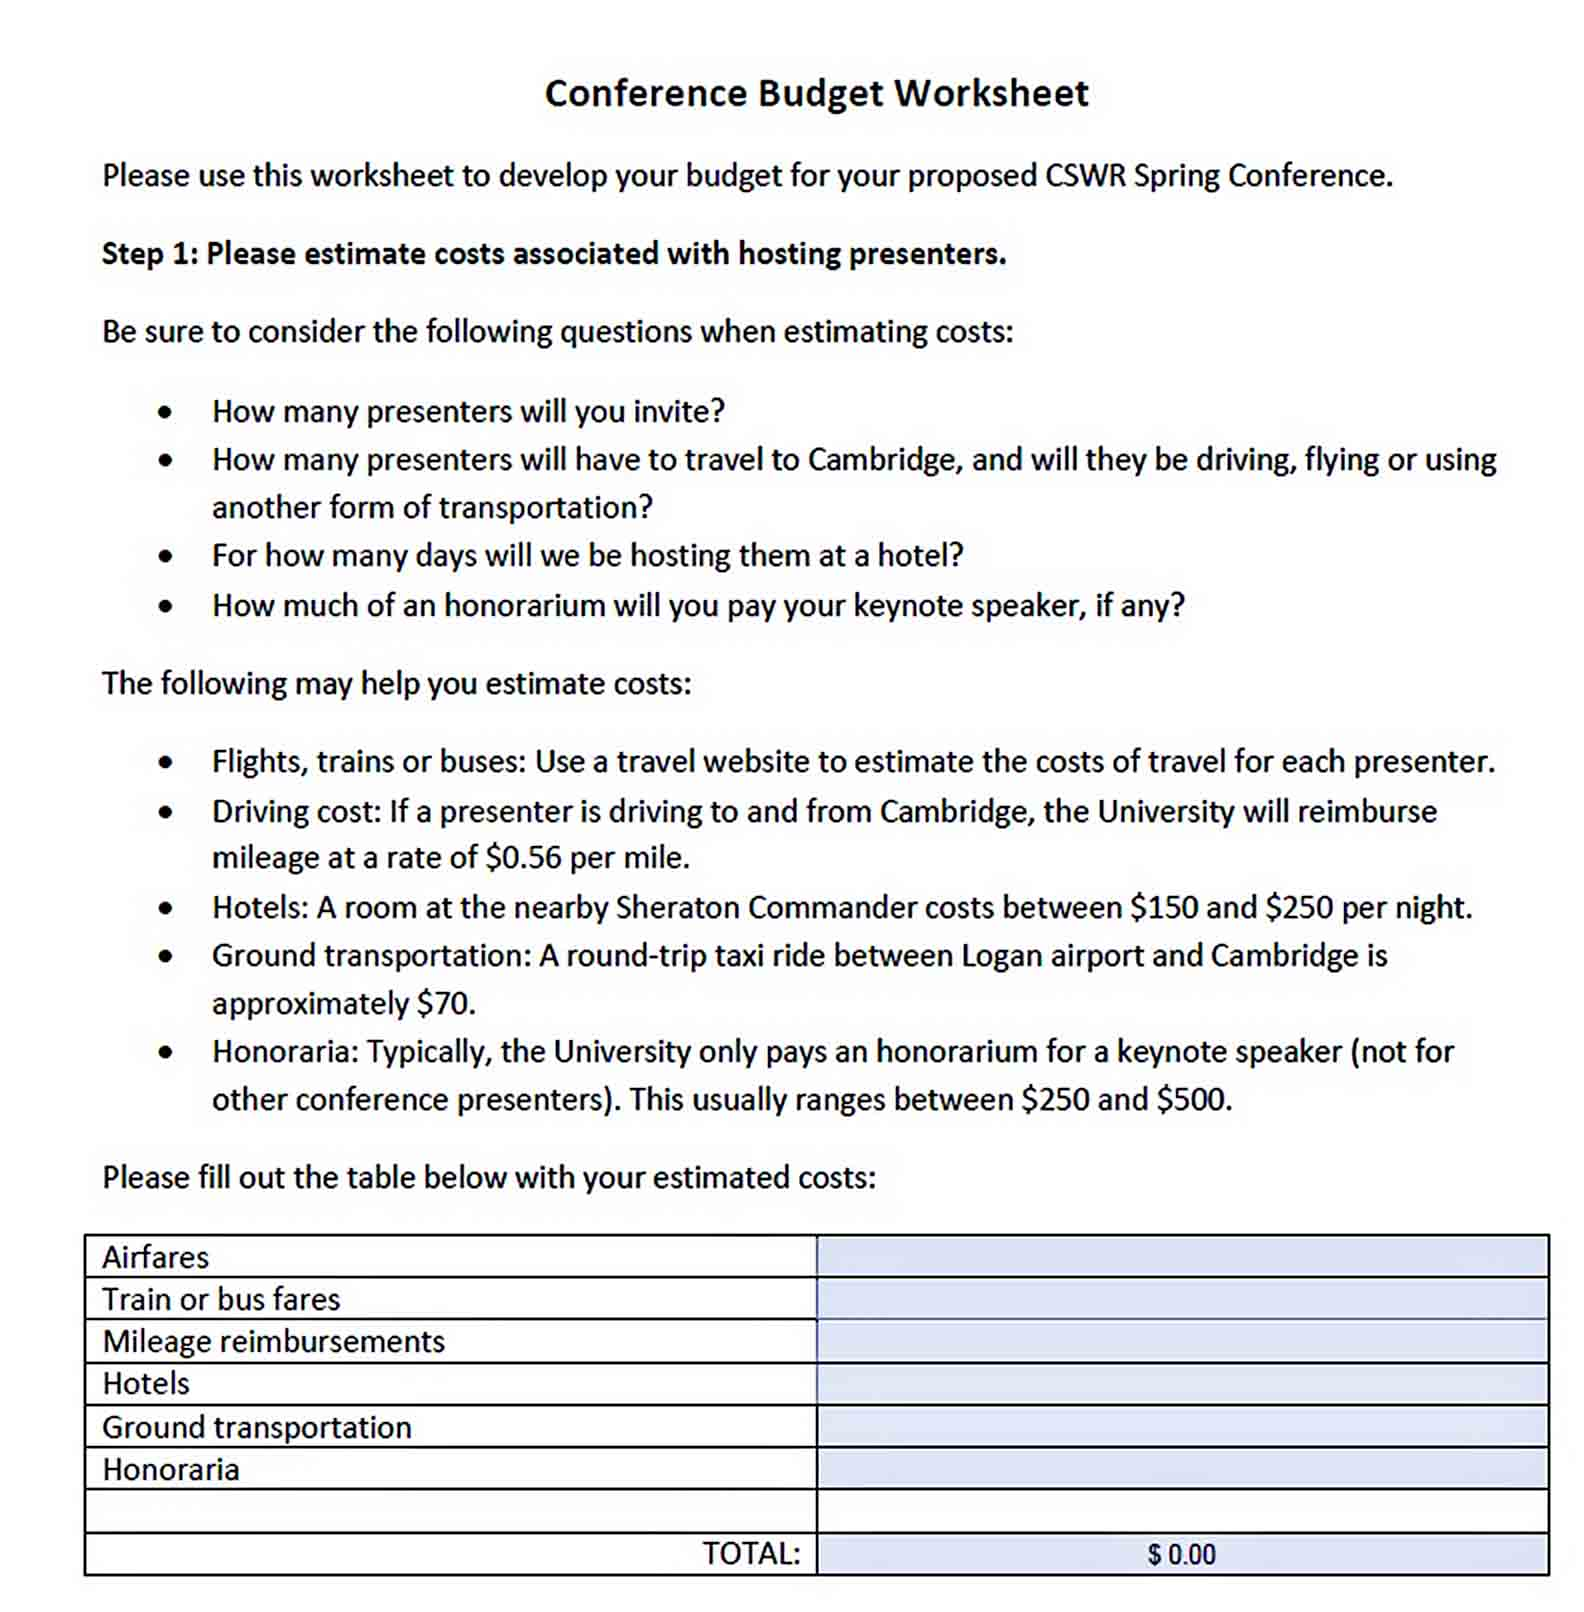 Conference Budget Worksheet sample 1